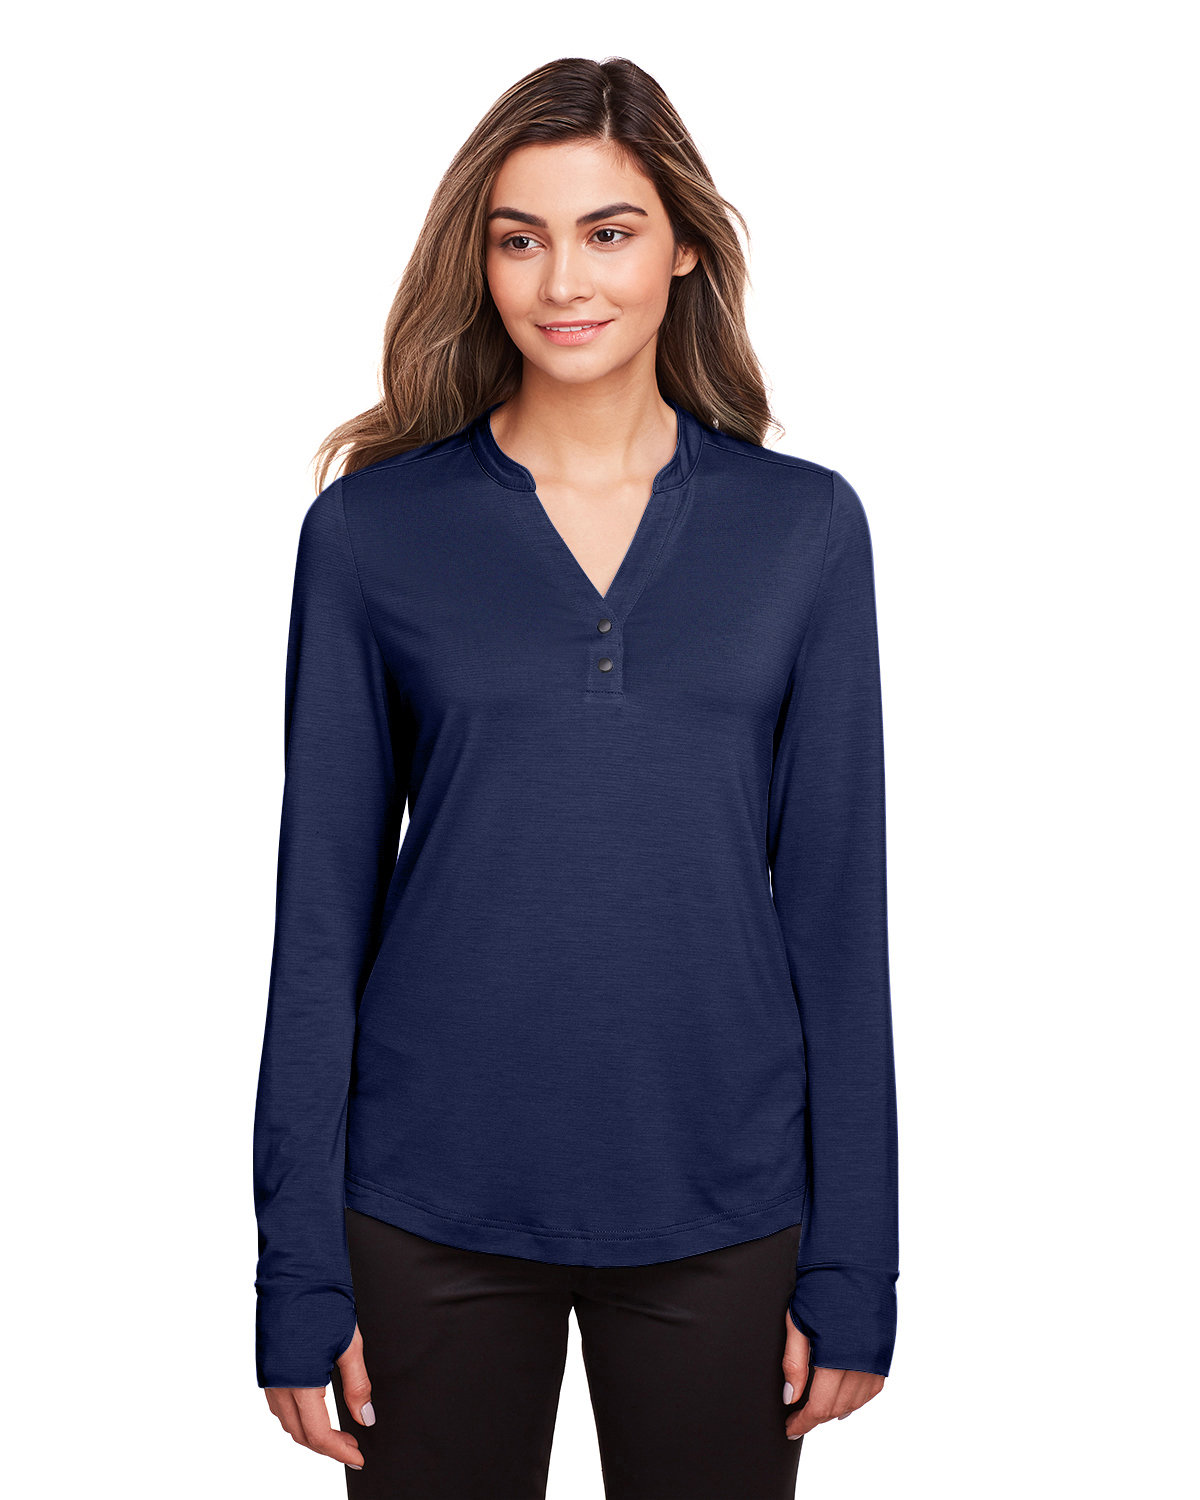 North End Ladies' Jaq Snap-Up Stretch Performance Pullover CLASSIC NAVY